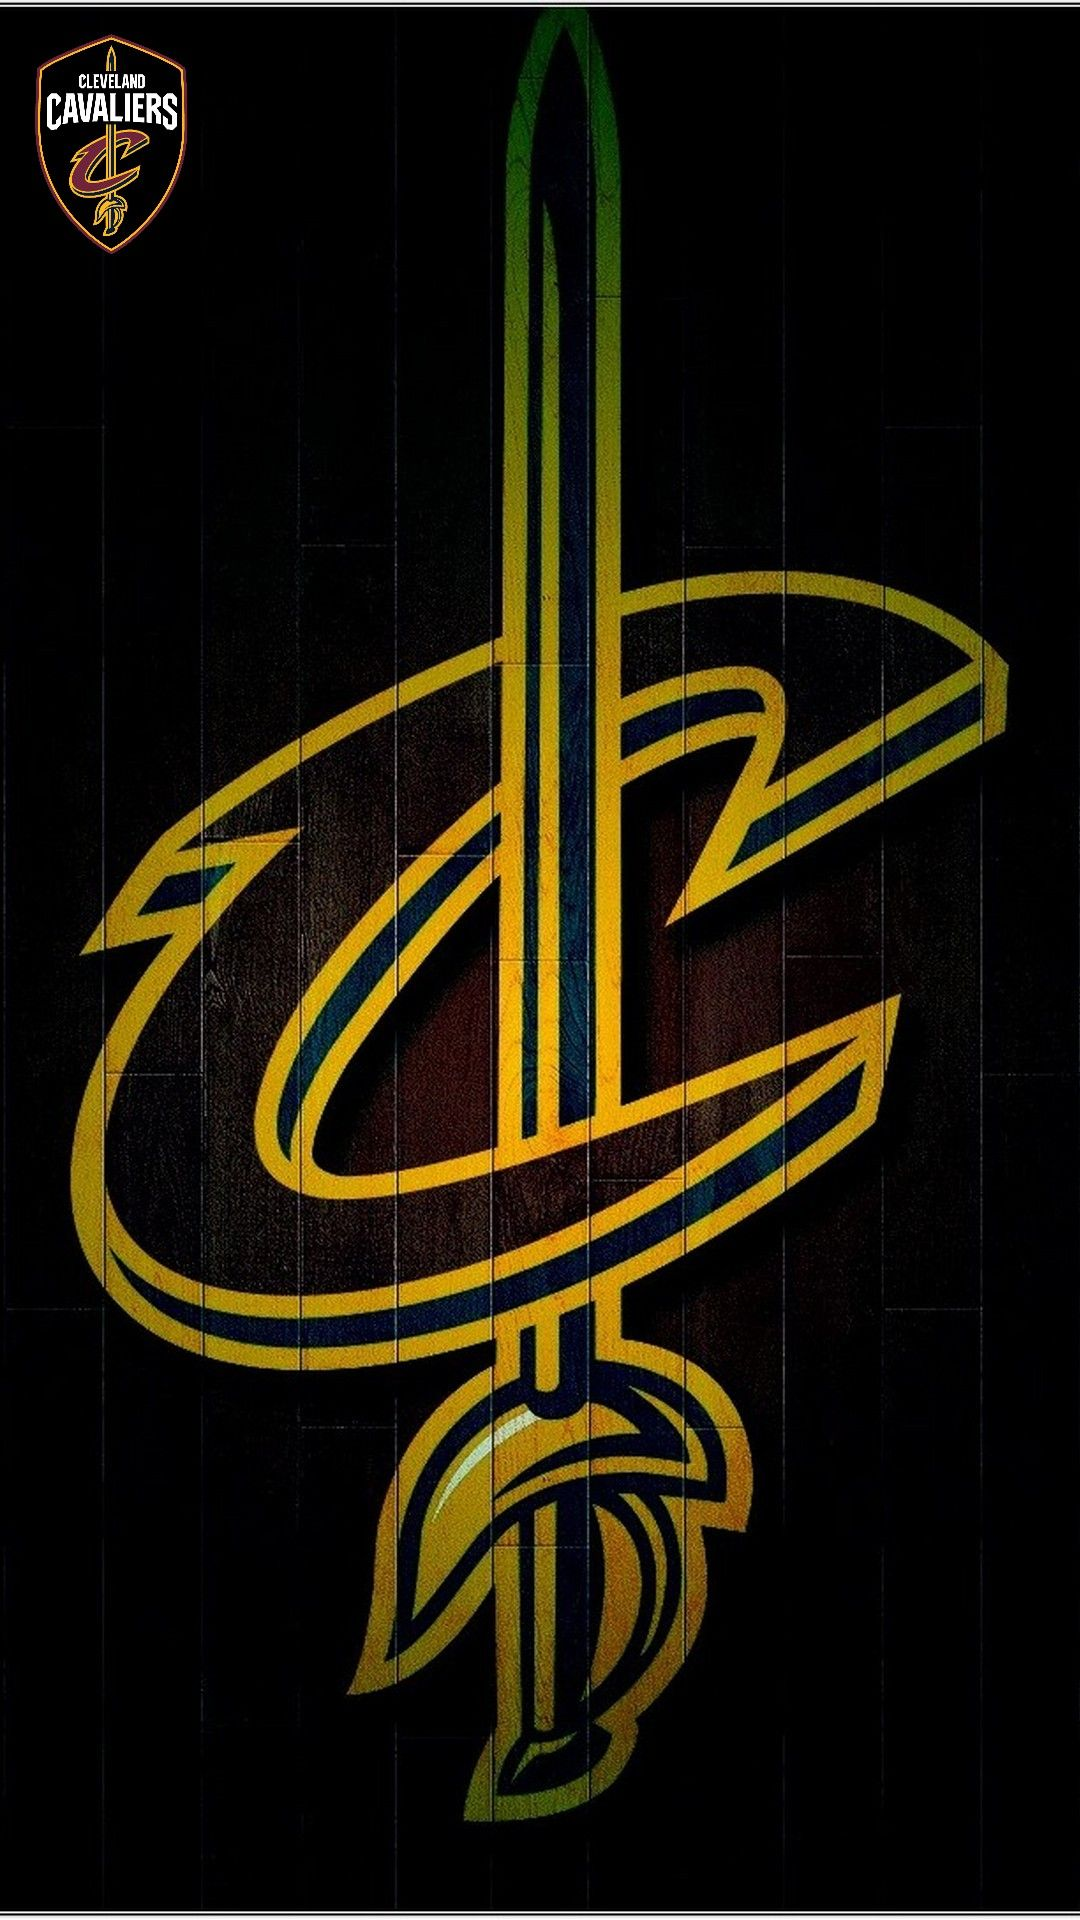 Cleveland Cavaliers Iphone 6 Wallpaper Cavs Wallpaper Cavaliers